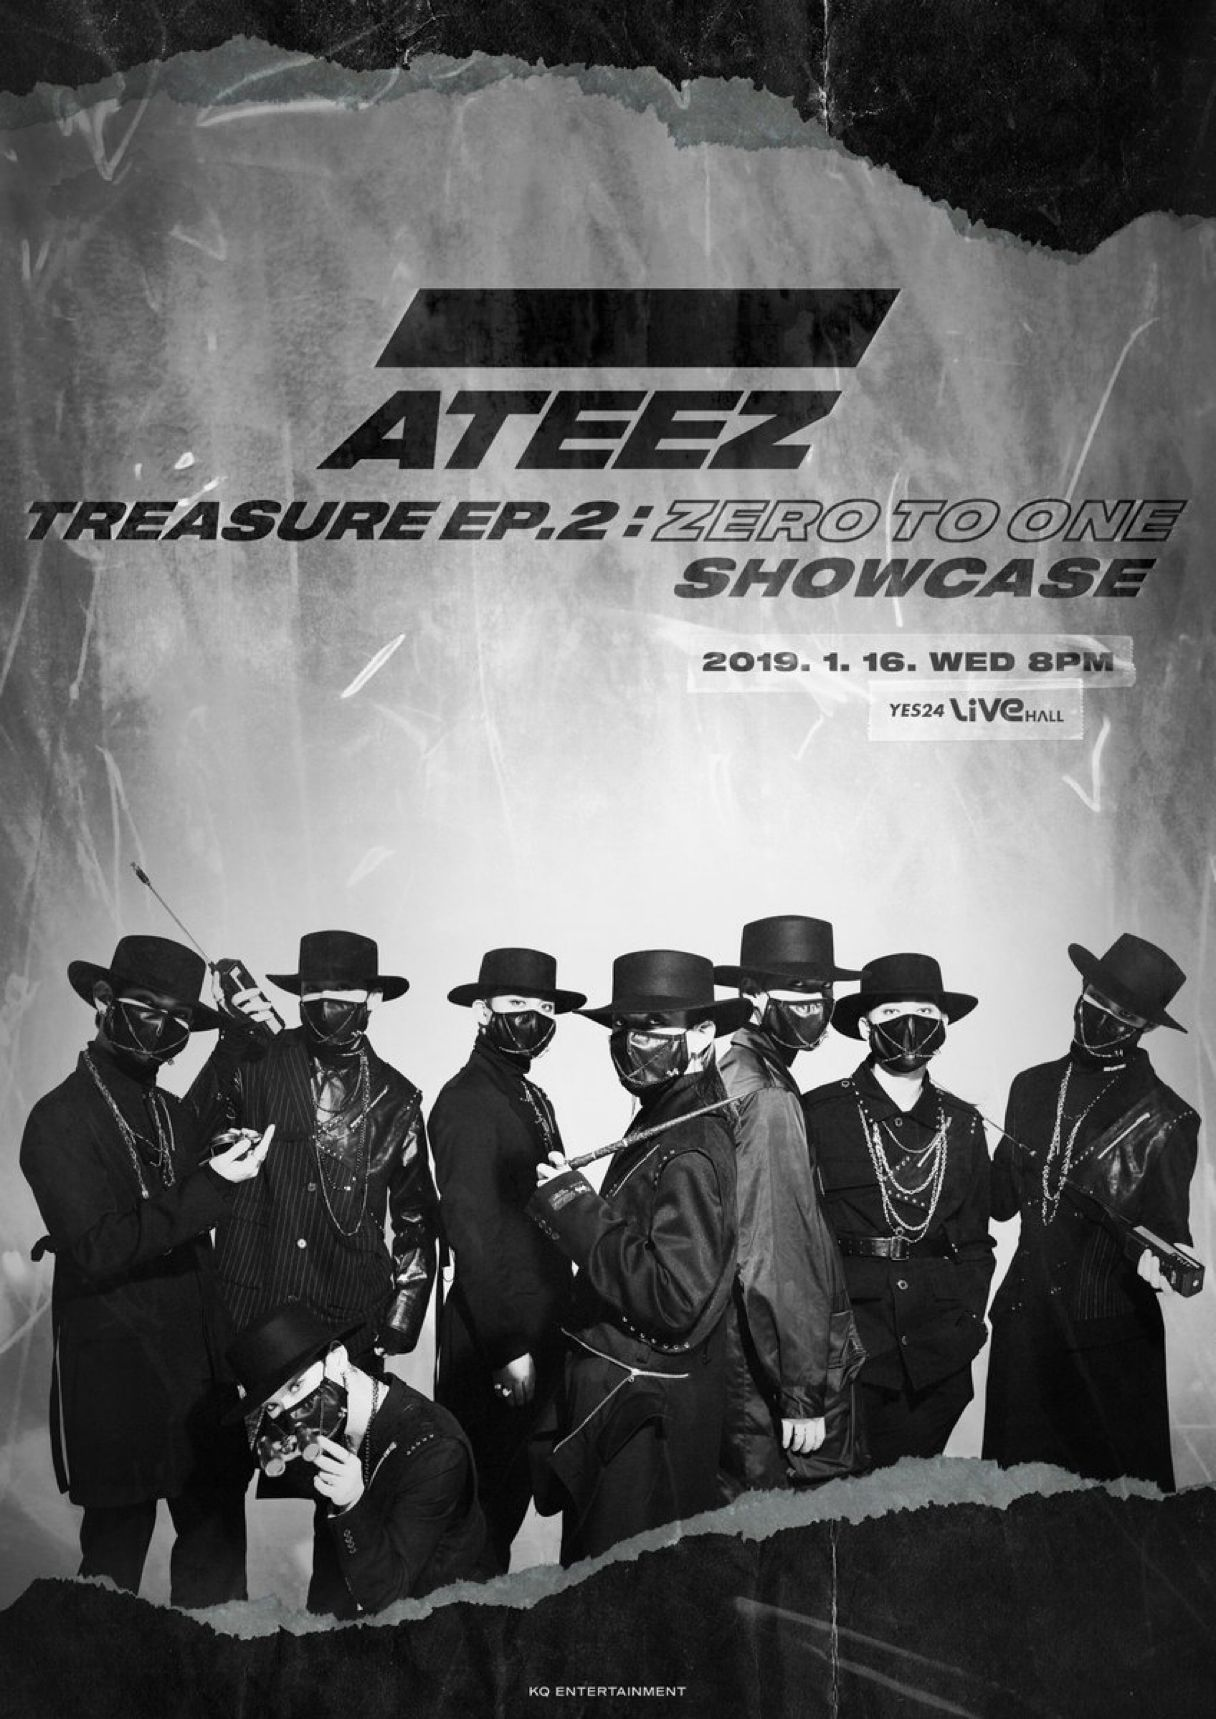 Idea by 𝕭𝖗𝖎𝖓𝖌𝖎𝖓𝖌 𝕾𝖊𝖇𝖇𝖞 𝕭𝖆𝖈𝖐 on ATEEZ Concert posters